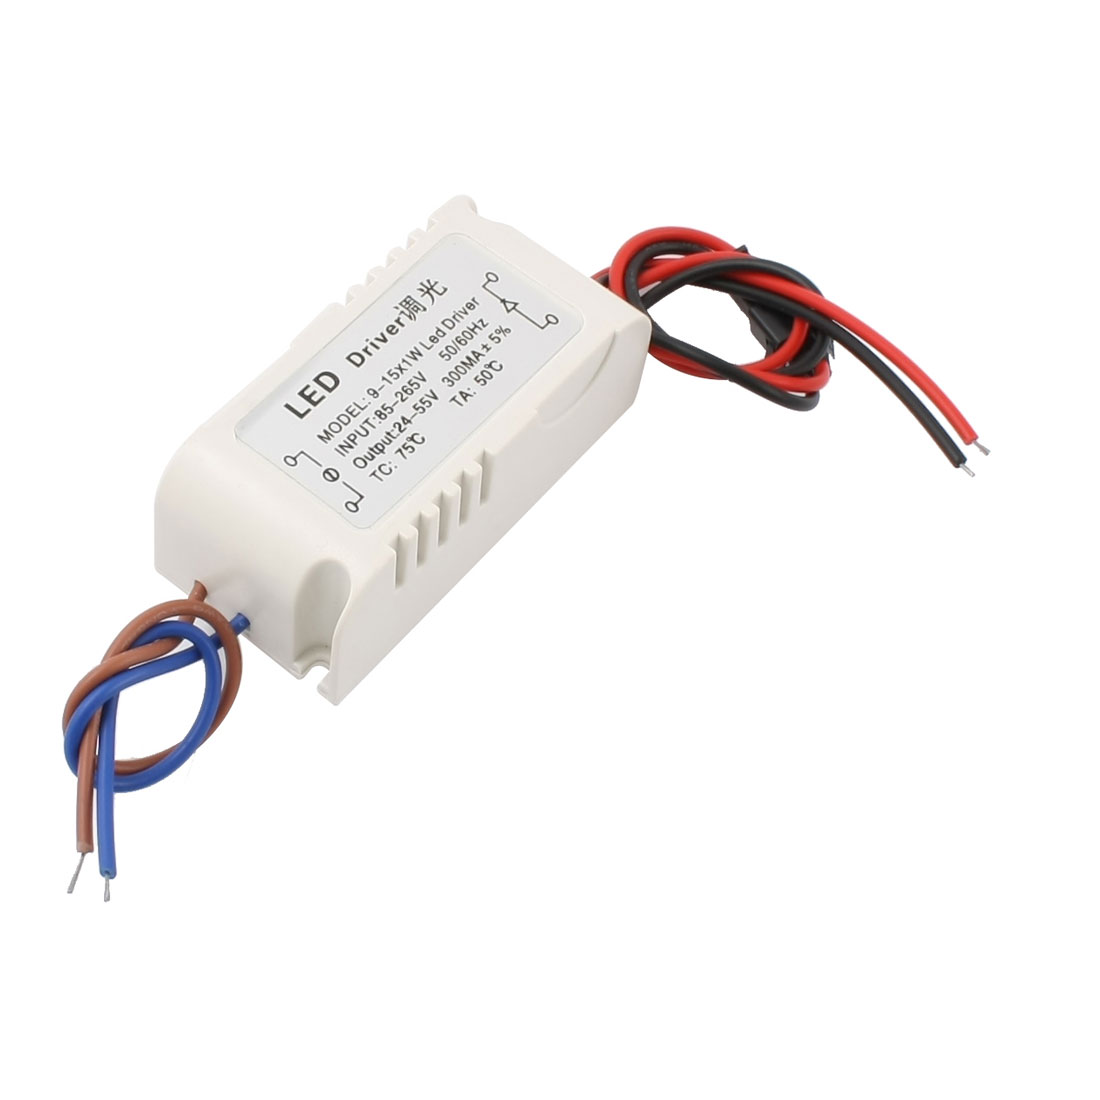 AC 85-265V to DC 24-55V 300mA (9-15)x1W Plastic Case LED Driver Dimmer Adapter Converter